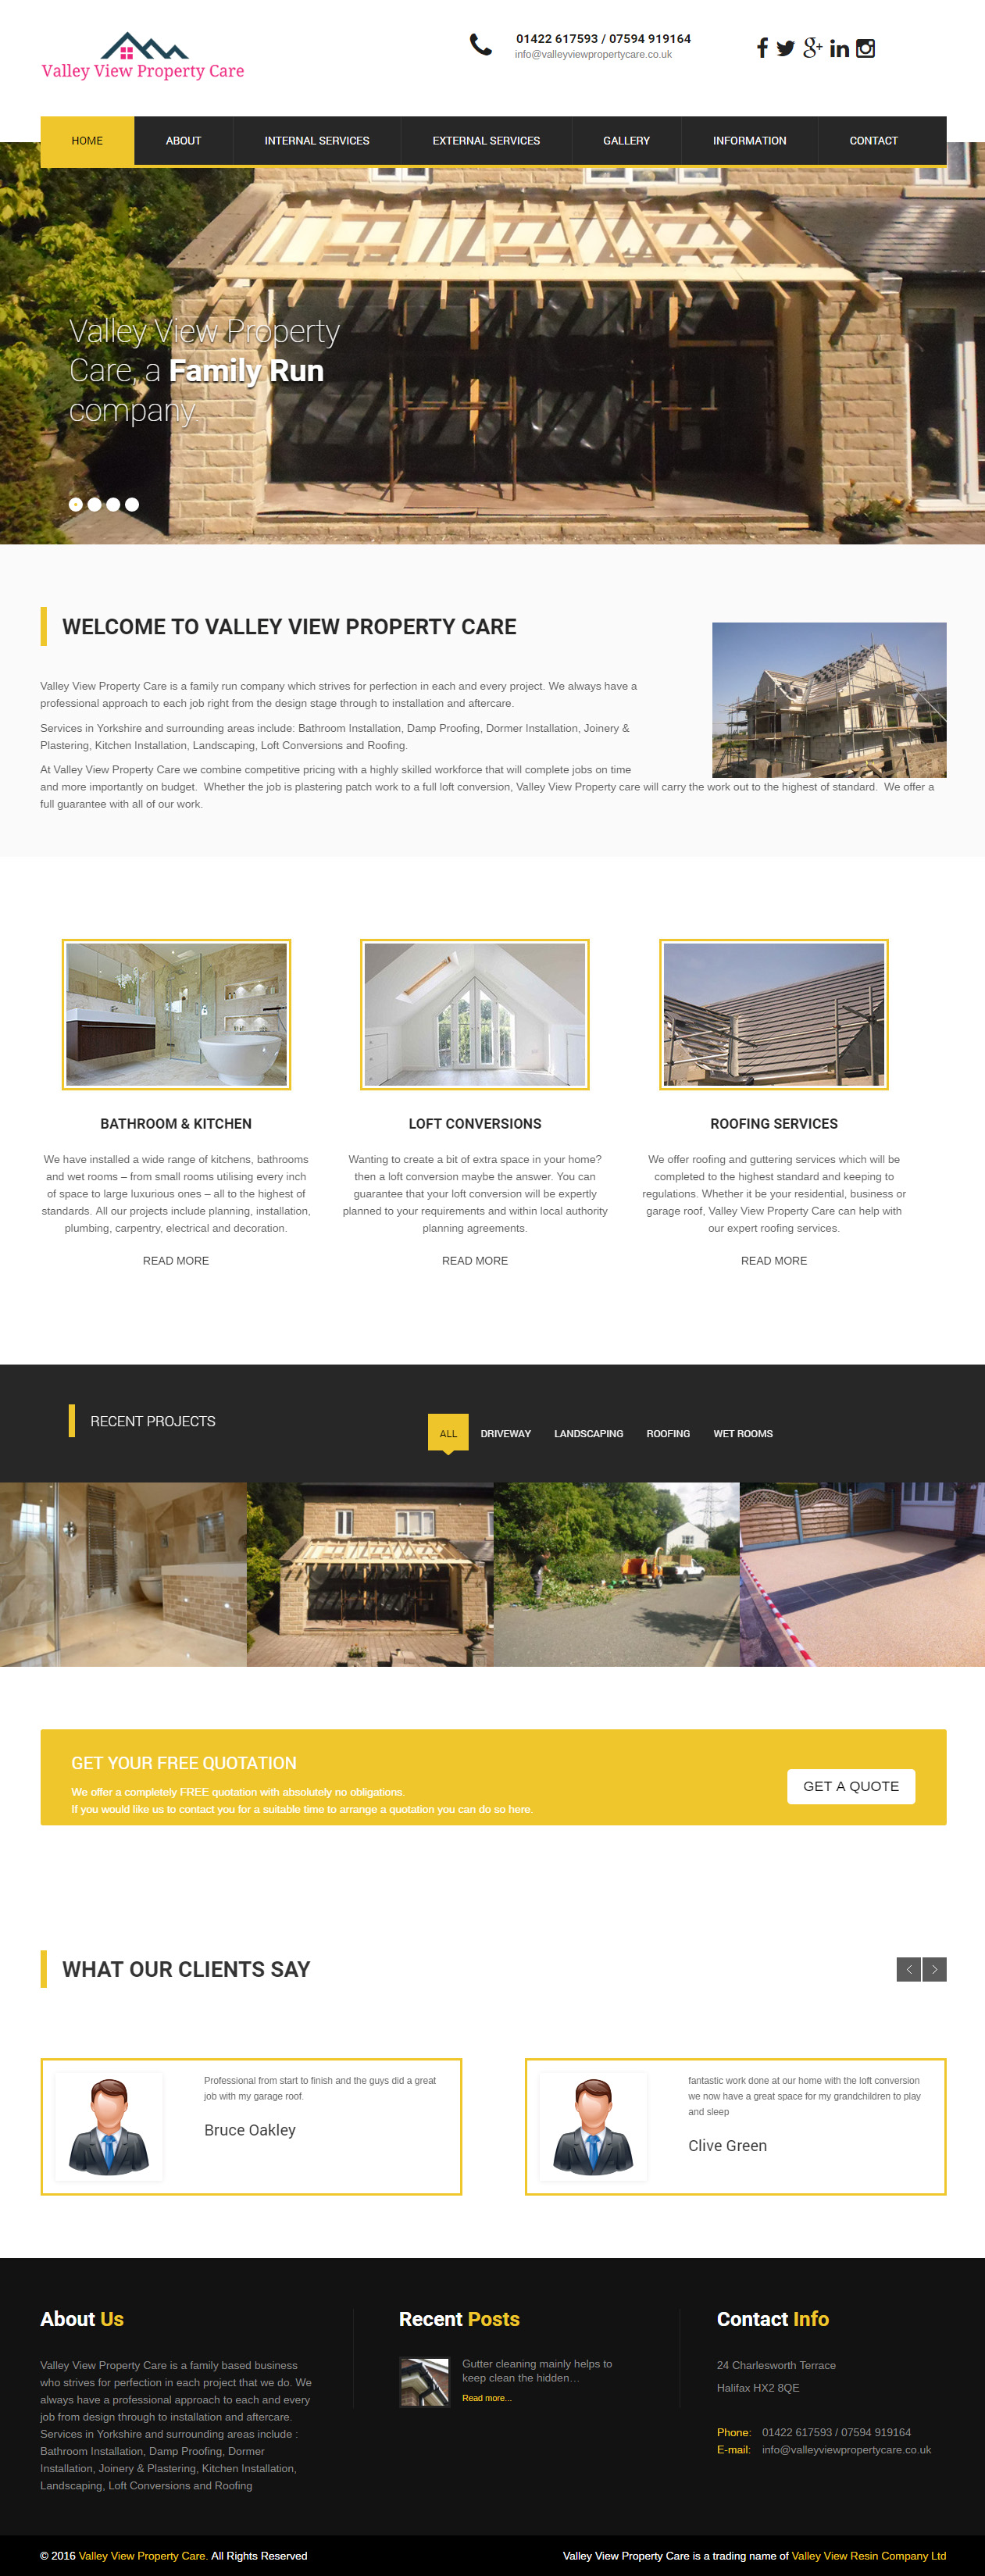 Valley View Property Care Website